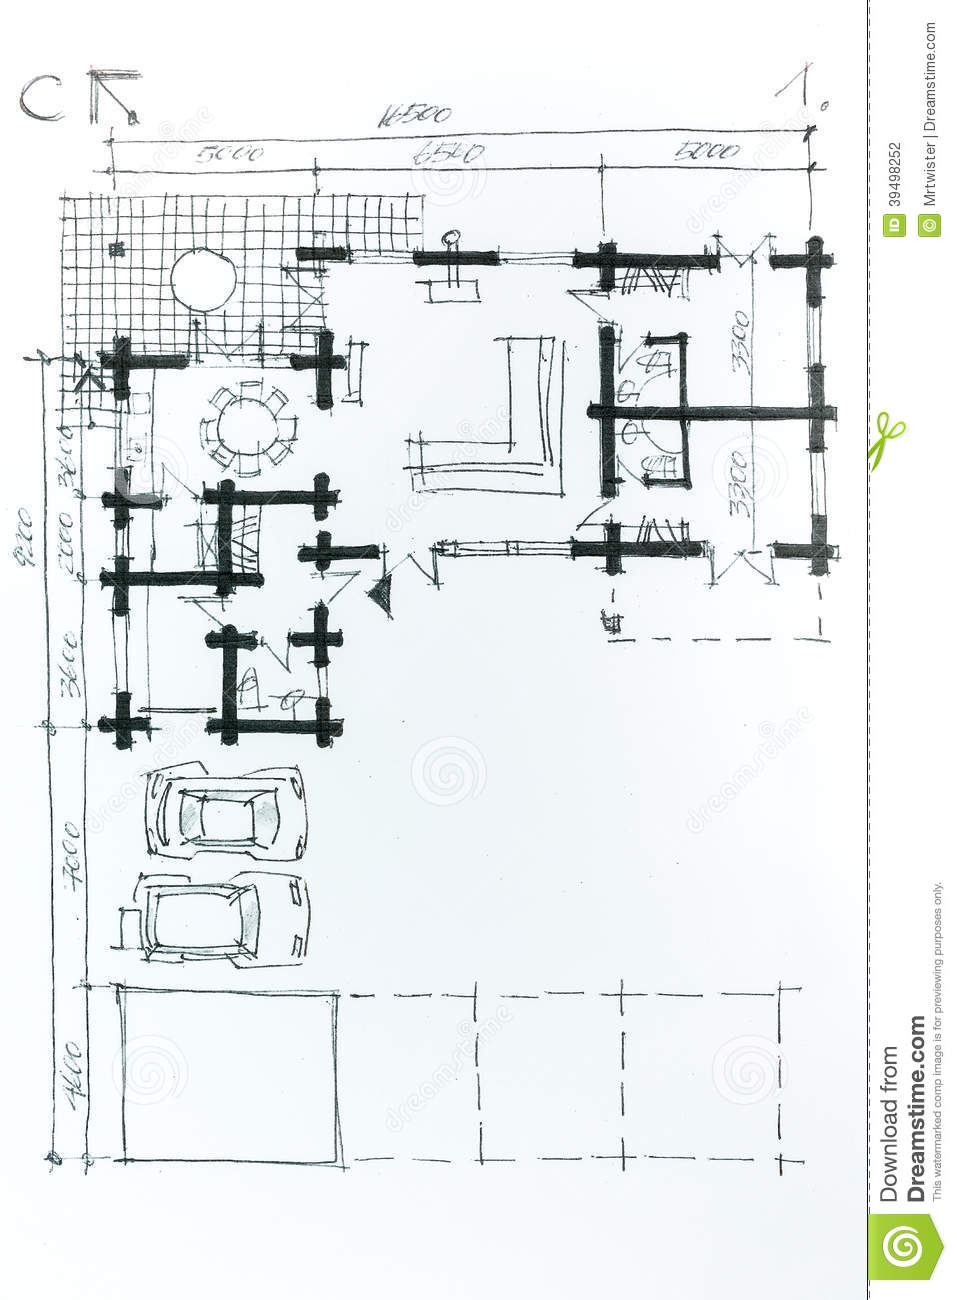 Home plan drawing stock illustration image 39498252 for Home plan sketch